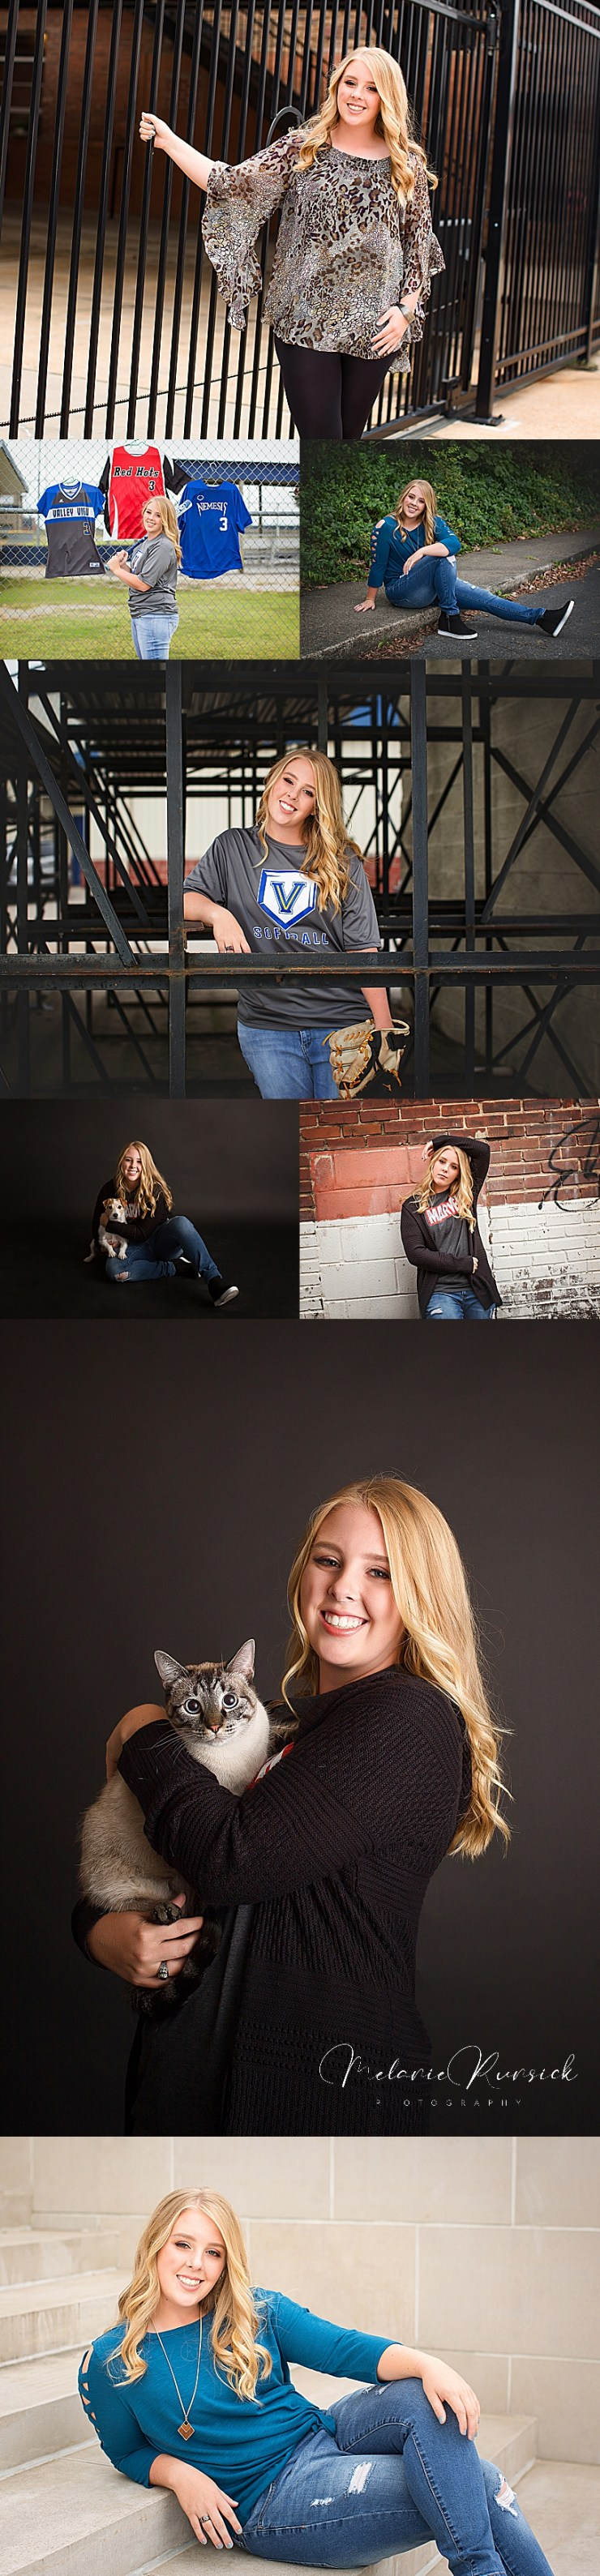 Northeast AR senior Photographer Melanie Runsick Photography